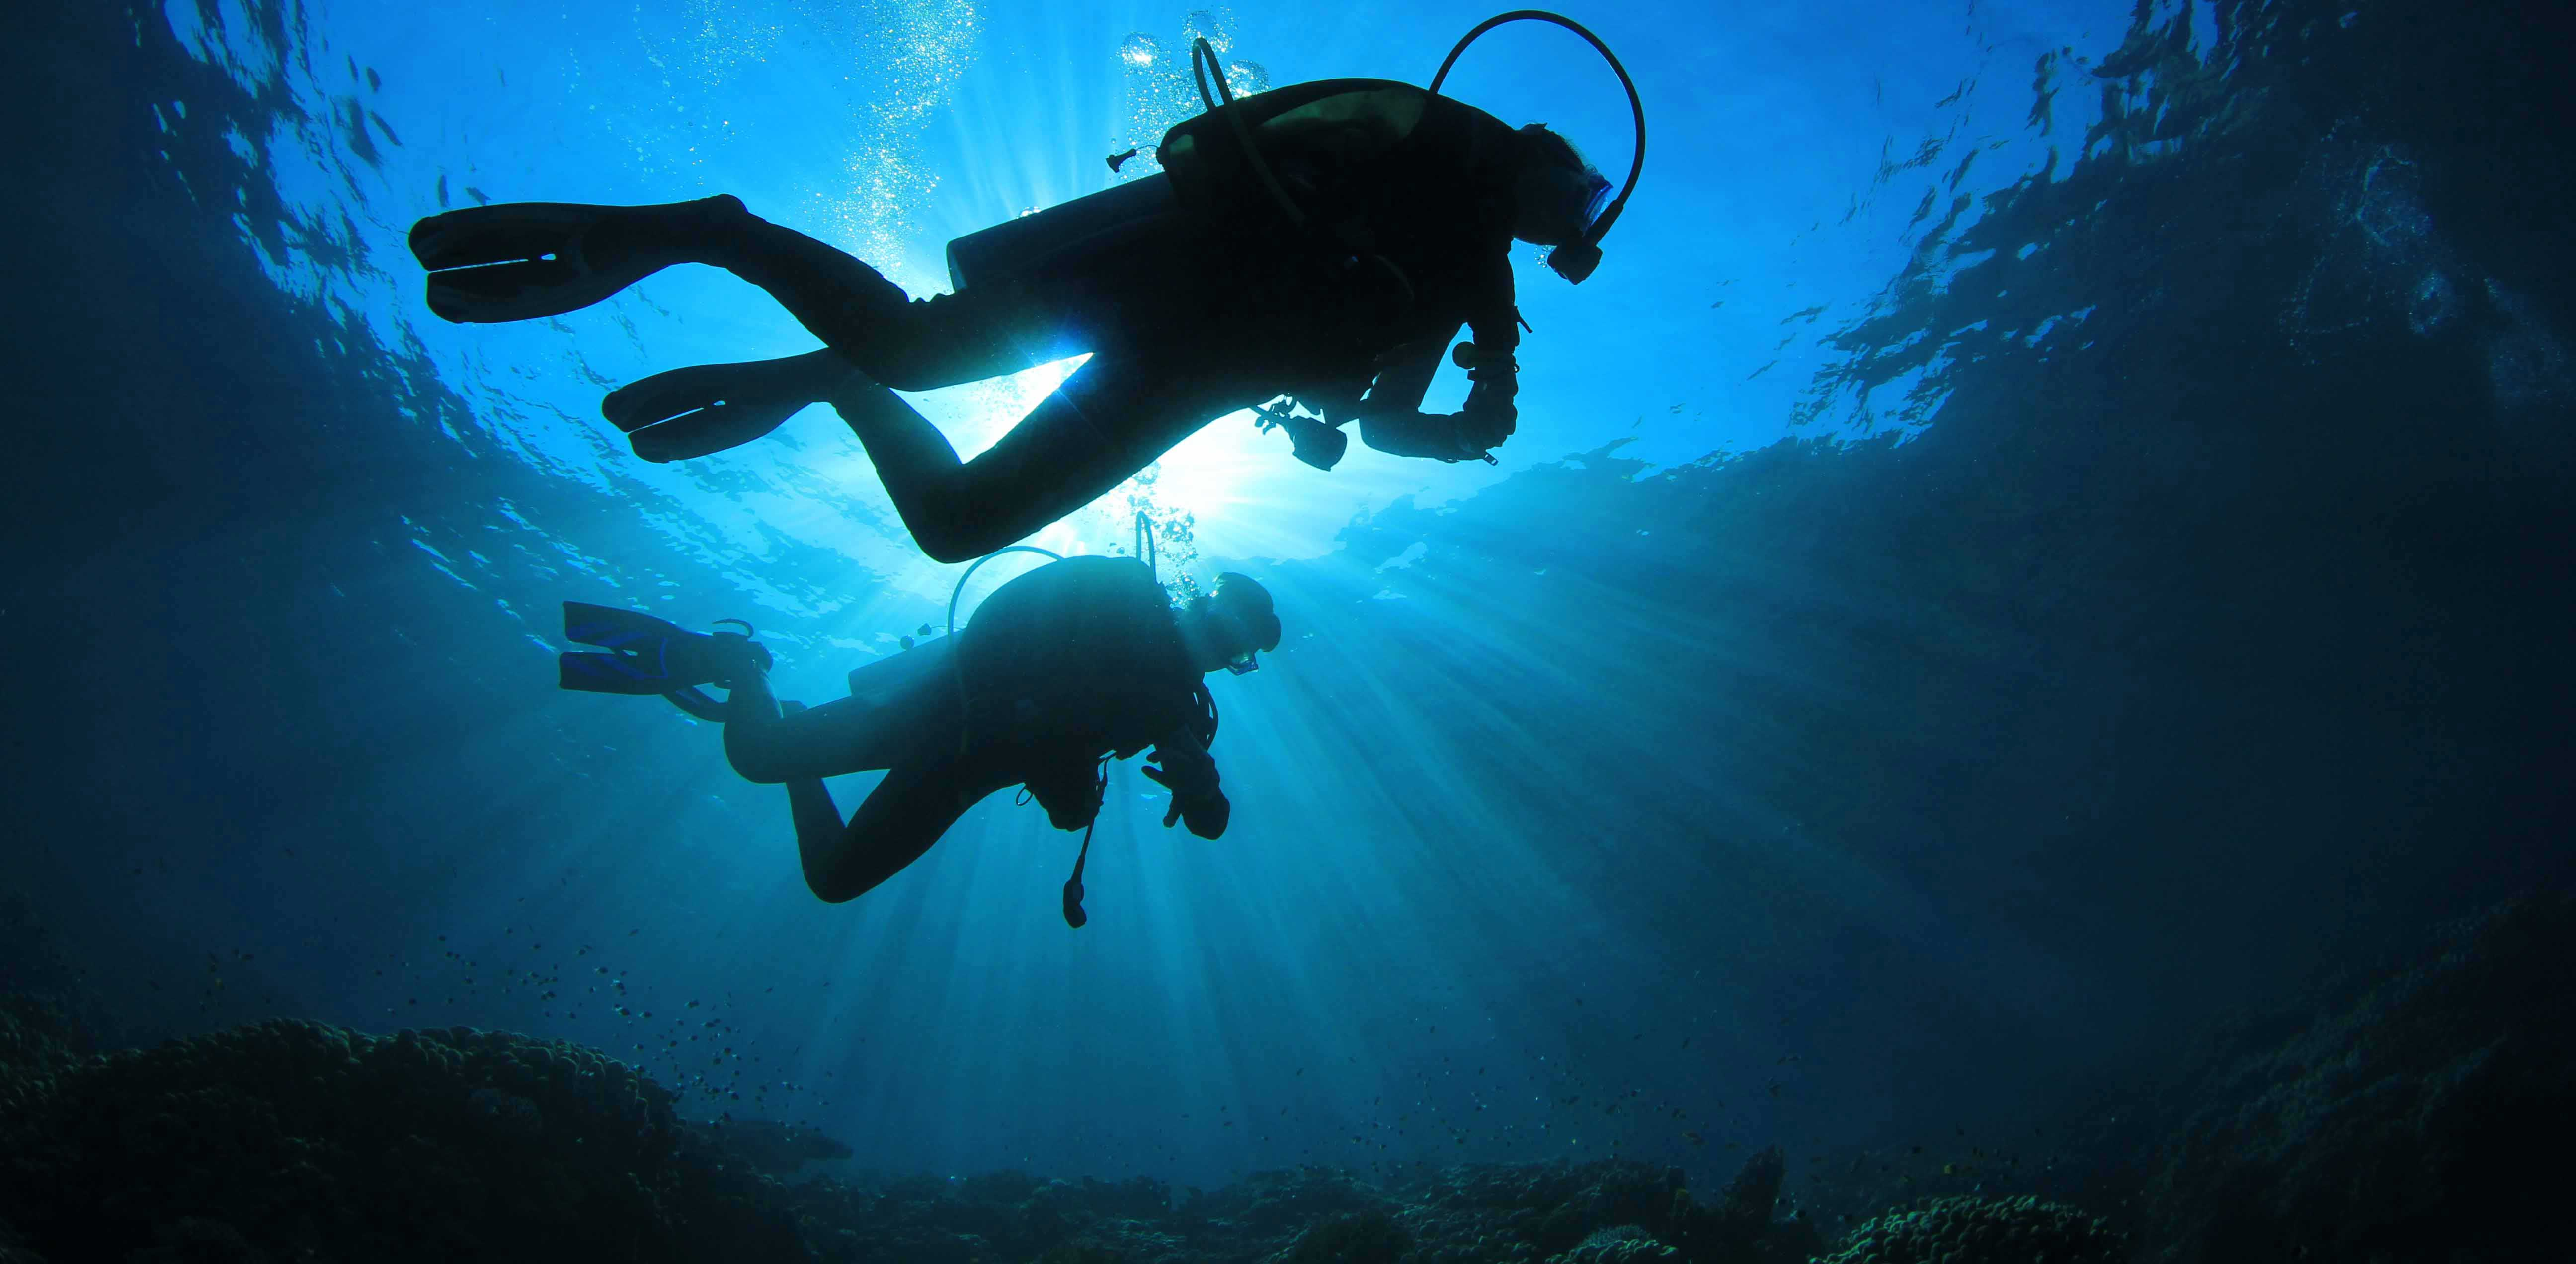 Divers-silhouette-11